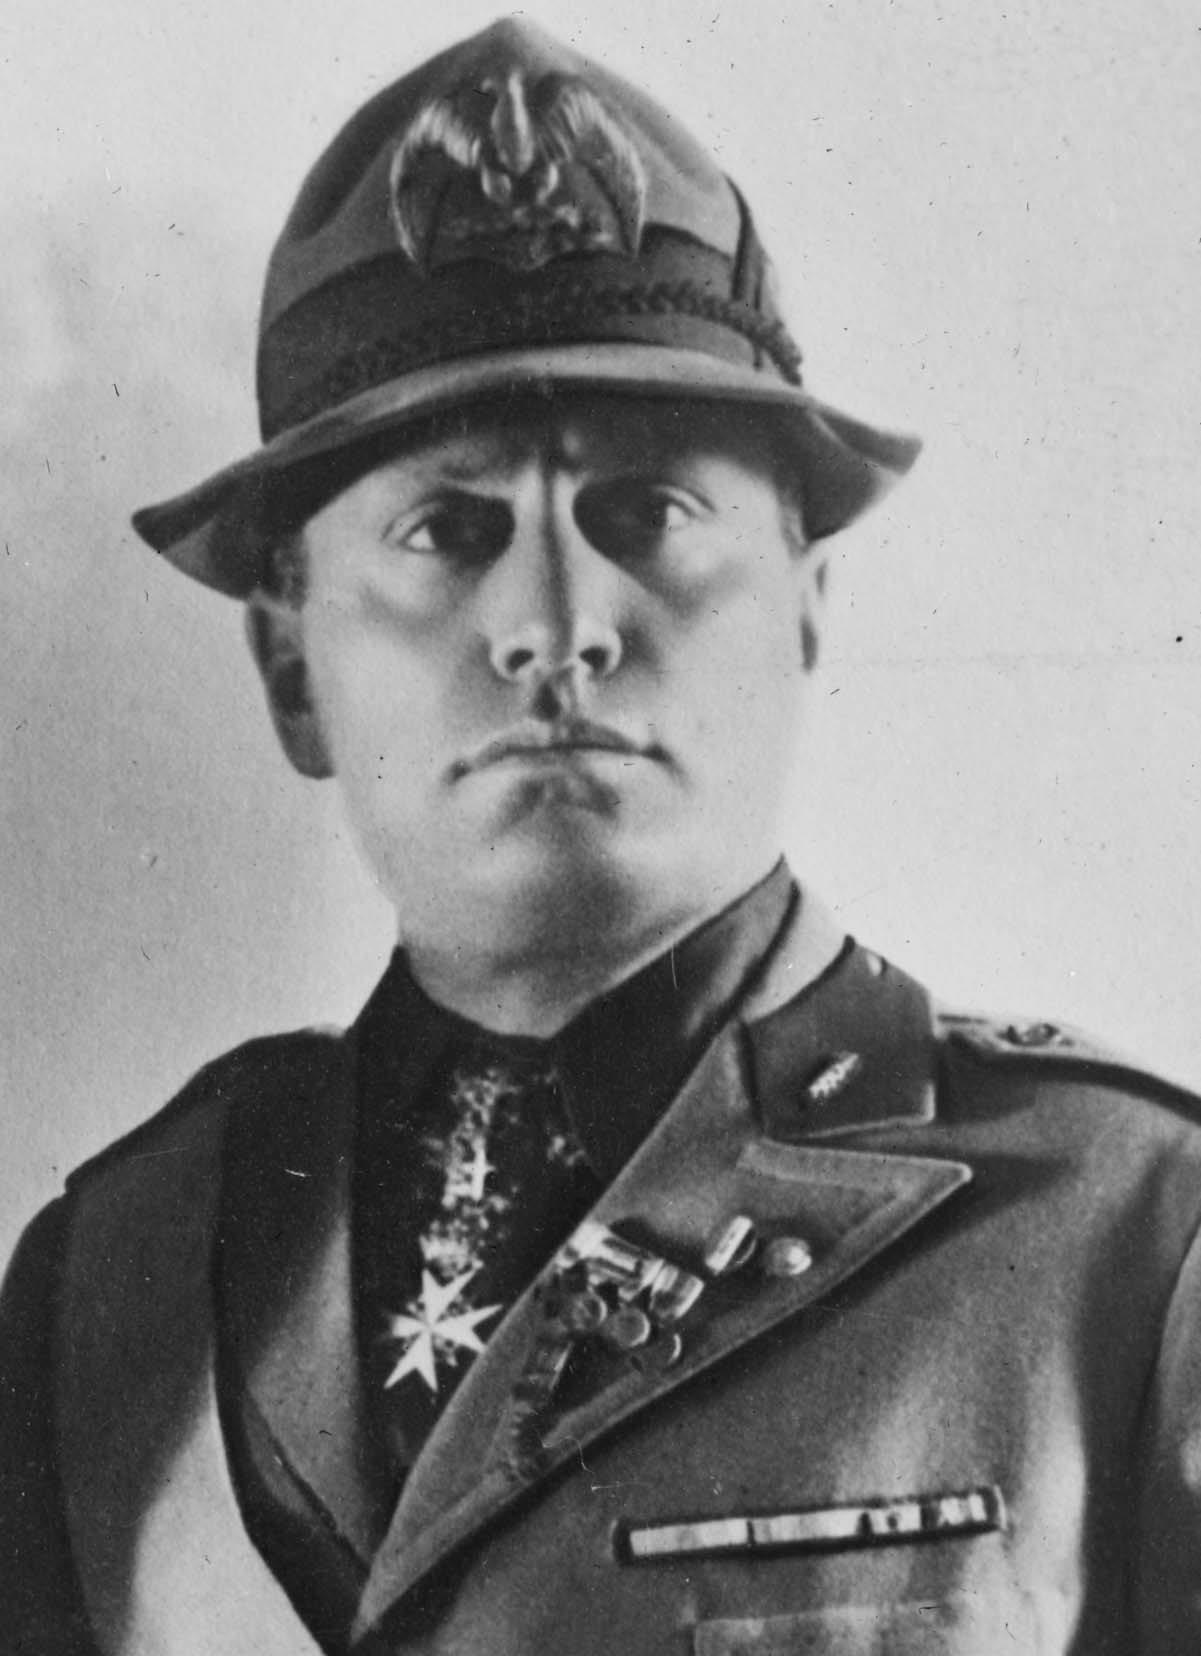 a biography of benito mussolini an italian fascist leader in world war two Benito mussolini and italian fascism what was mussolini's message world war one saw a major change in mussolini at the start of the war, as with most if not all.